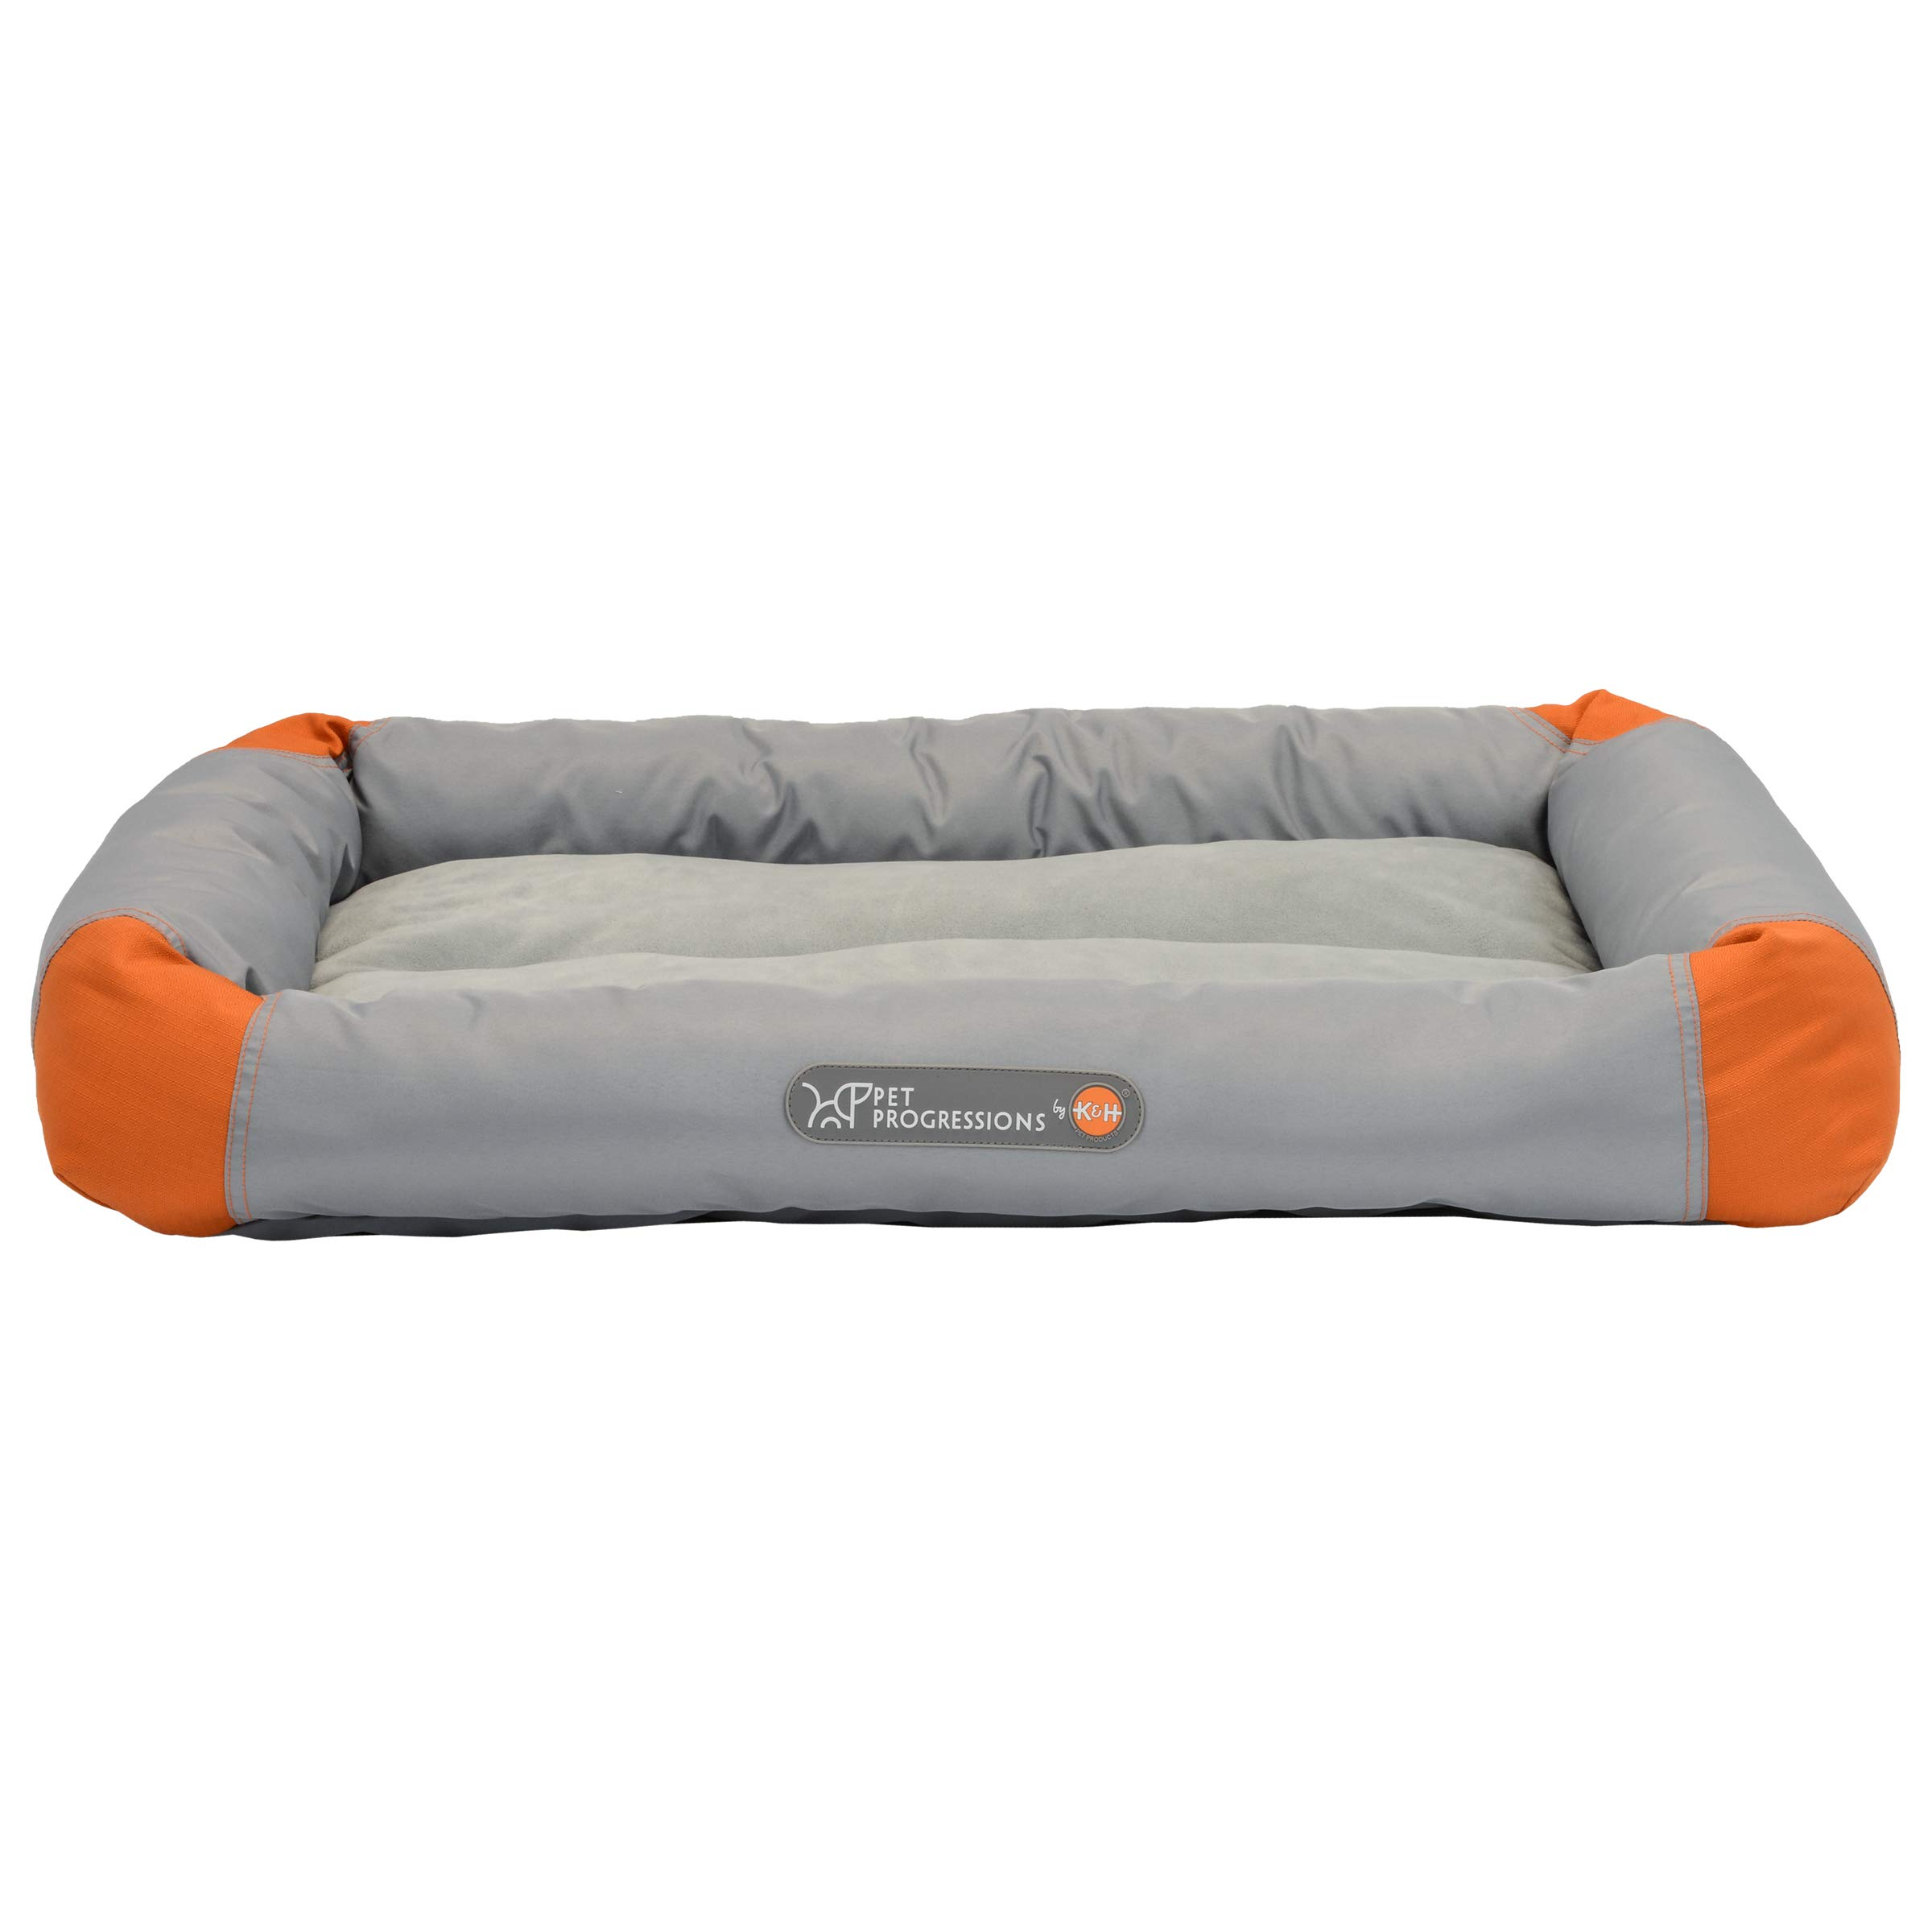 Pet Progressions by K&H Waterproof Puppy Bolster Pet Pad Large Grey - Piddle Proof, Stain & Odor Resistant, and Tear Resistant for Puppies & Adult Dogs